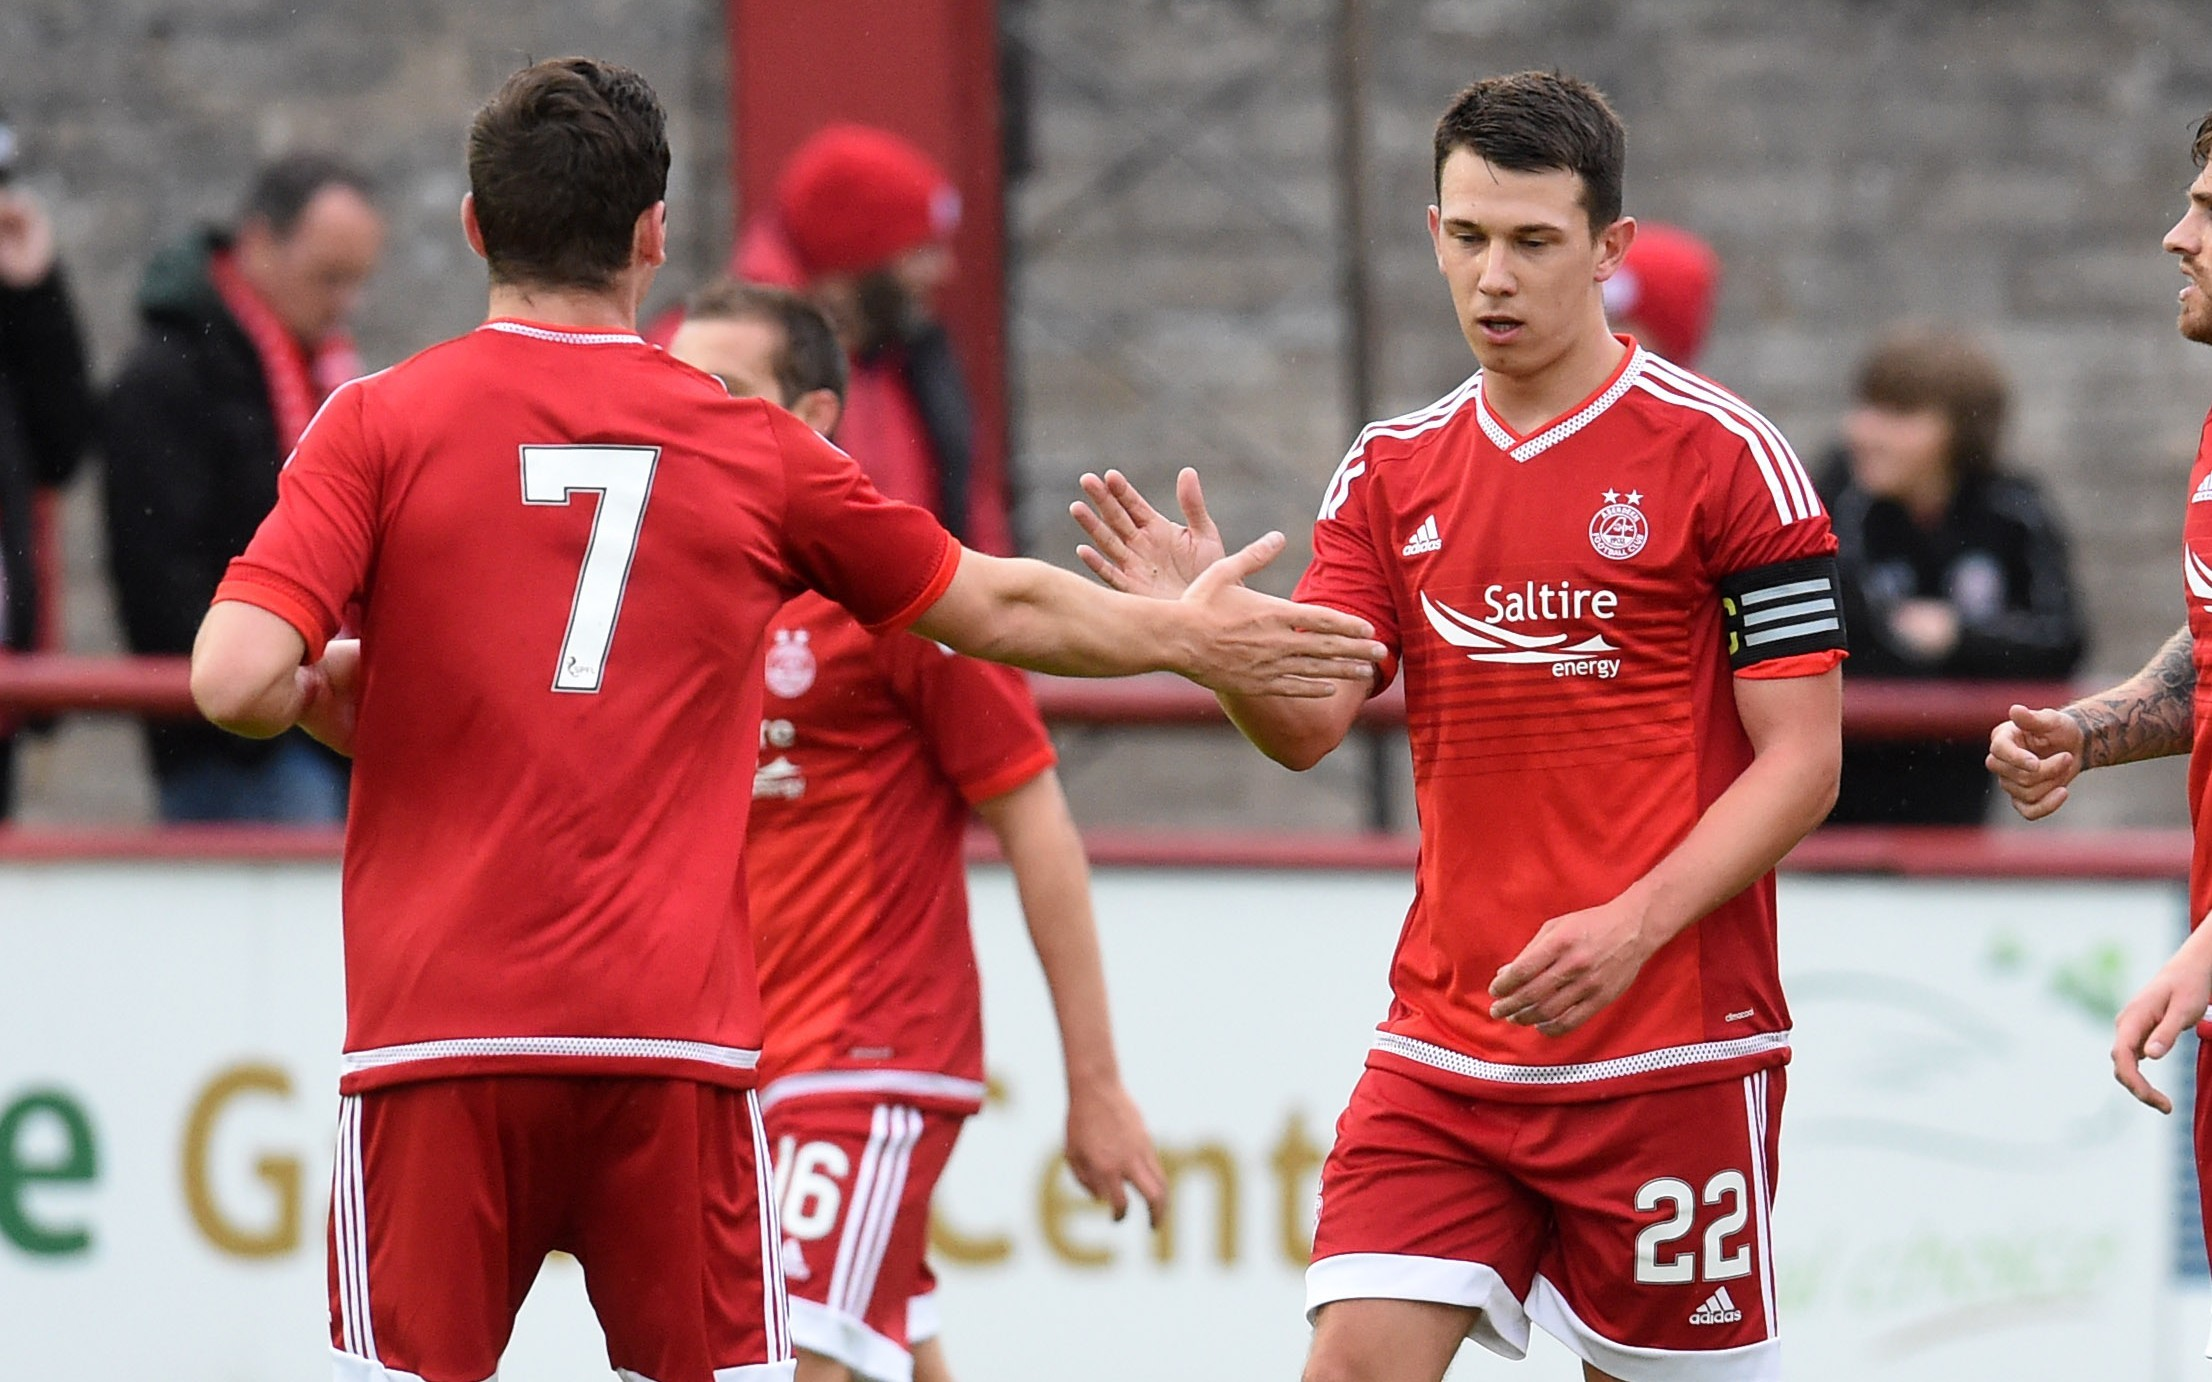 Aberdeen's Ryan Jack (right) celebrates his goal with team-mate Kenny McLean